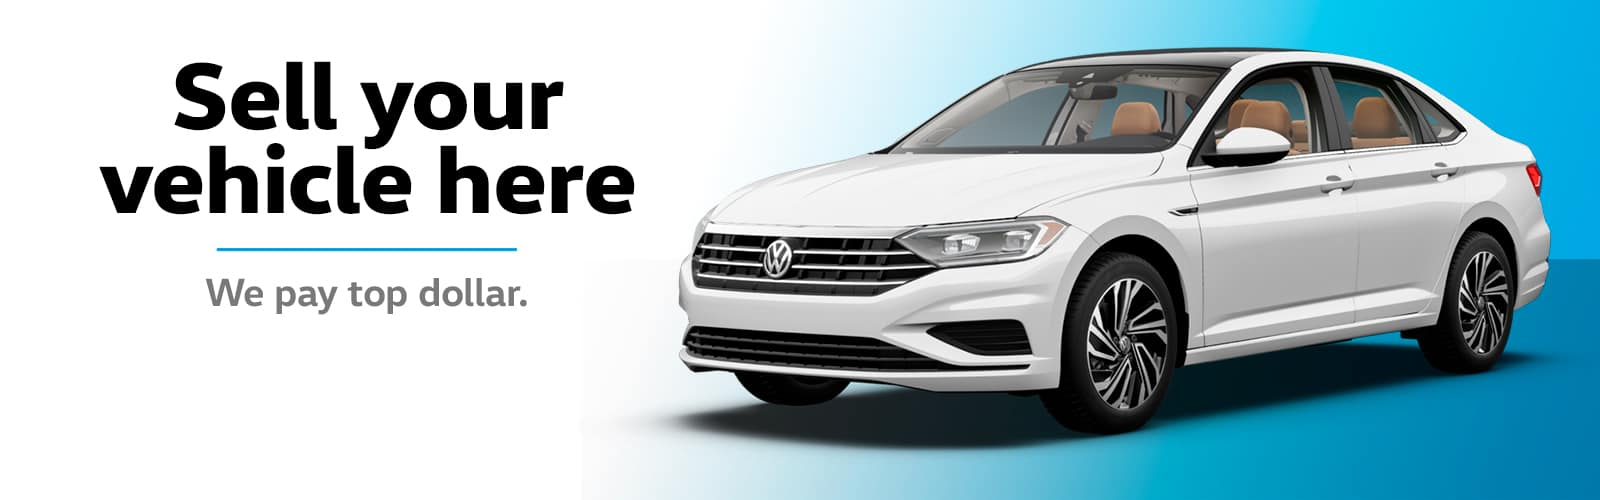 Reeves VW Sell Your Vehicle